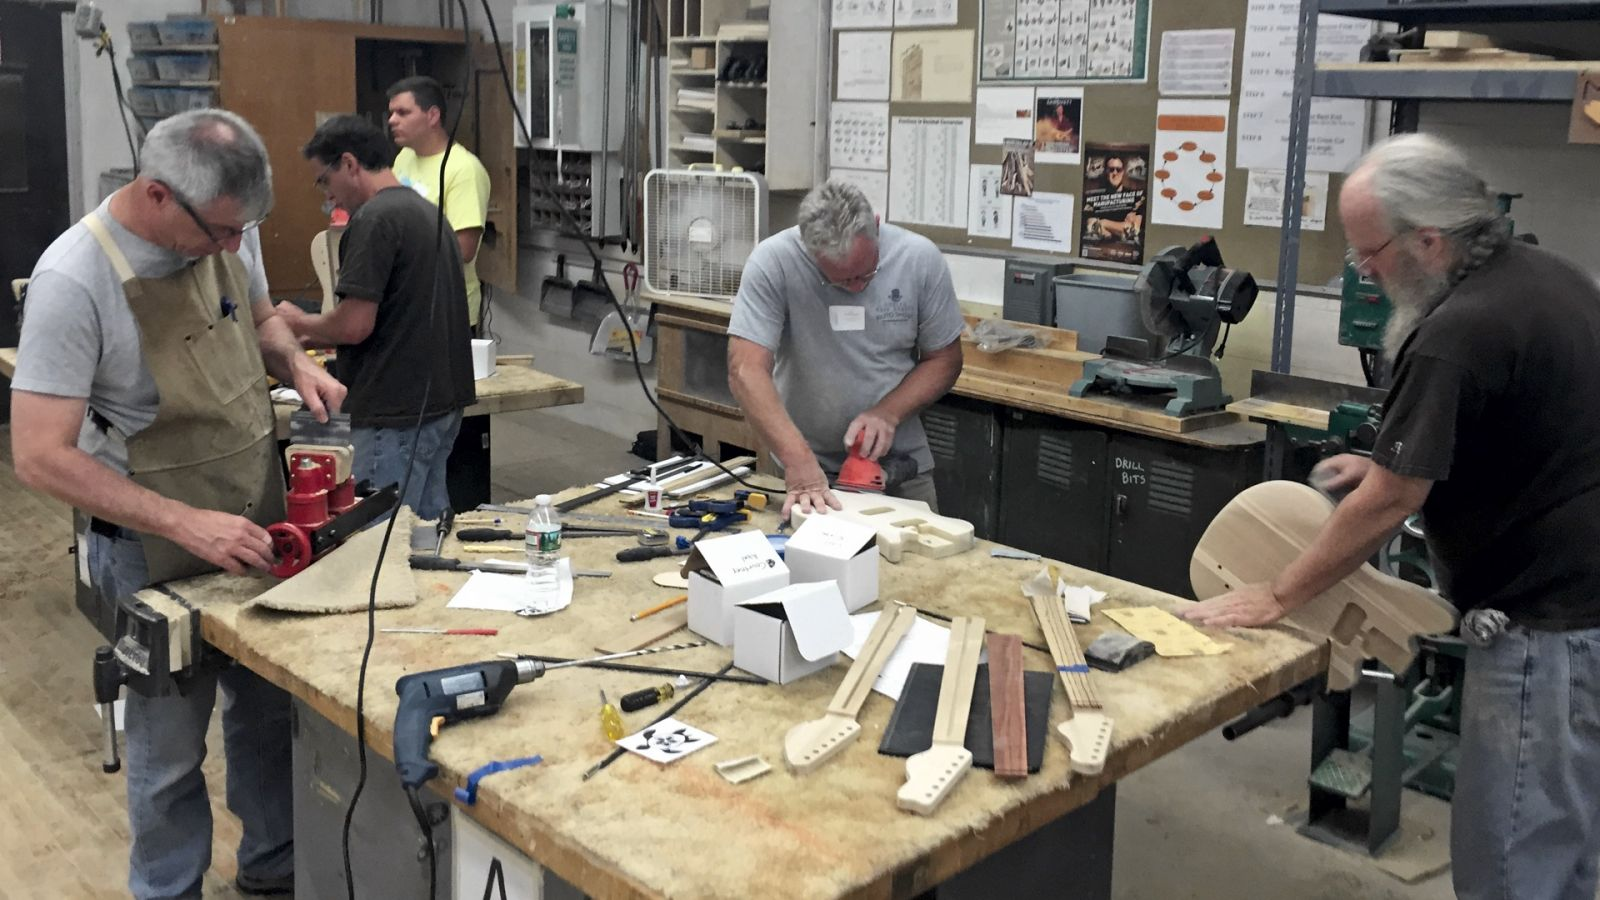 Mark French, manufacturing electric guitars with teachers in Fairless Hills, Pennsylvania